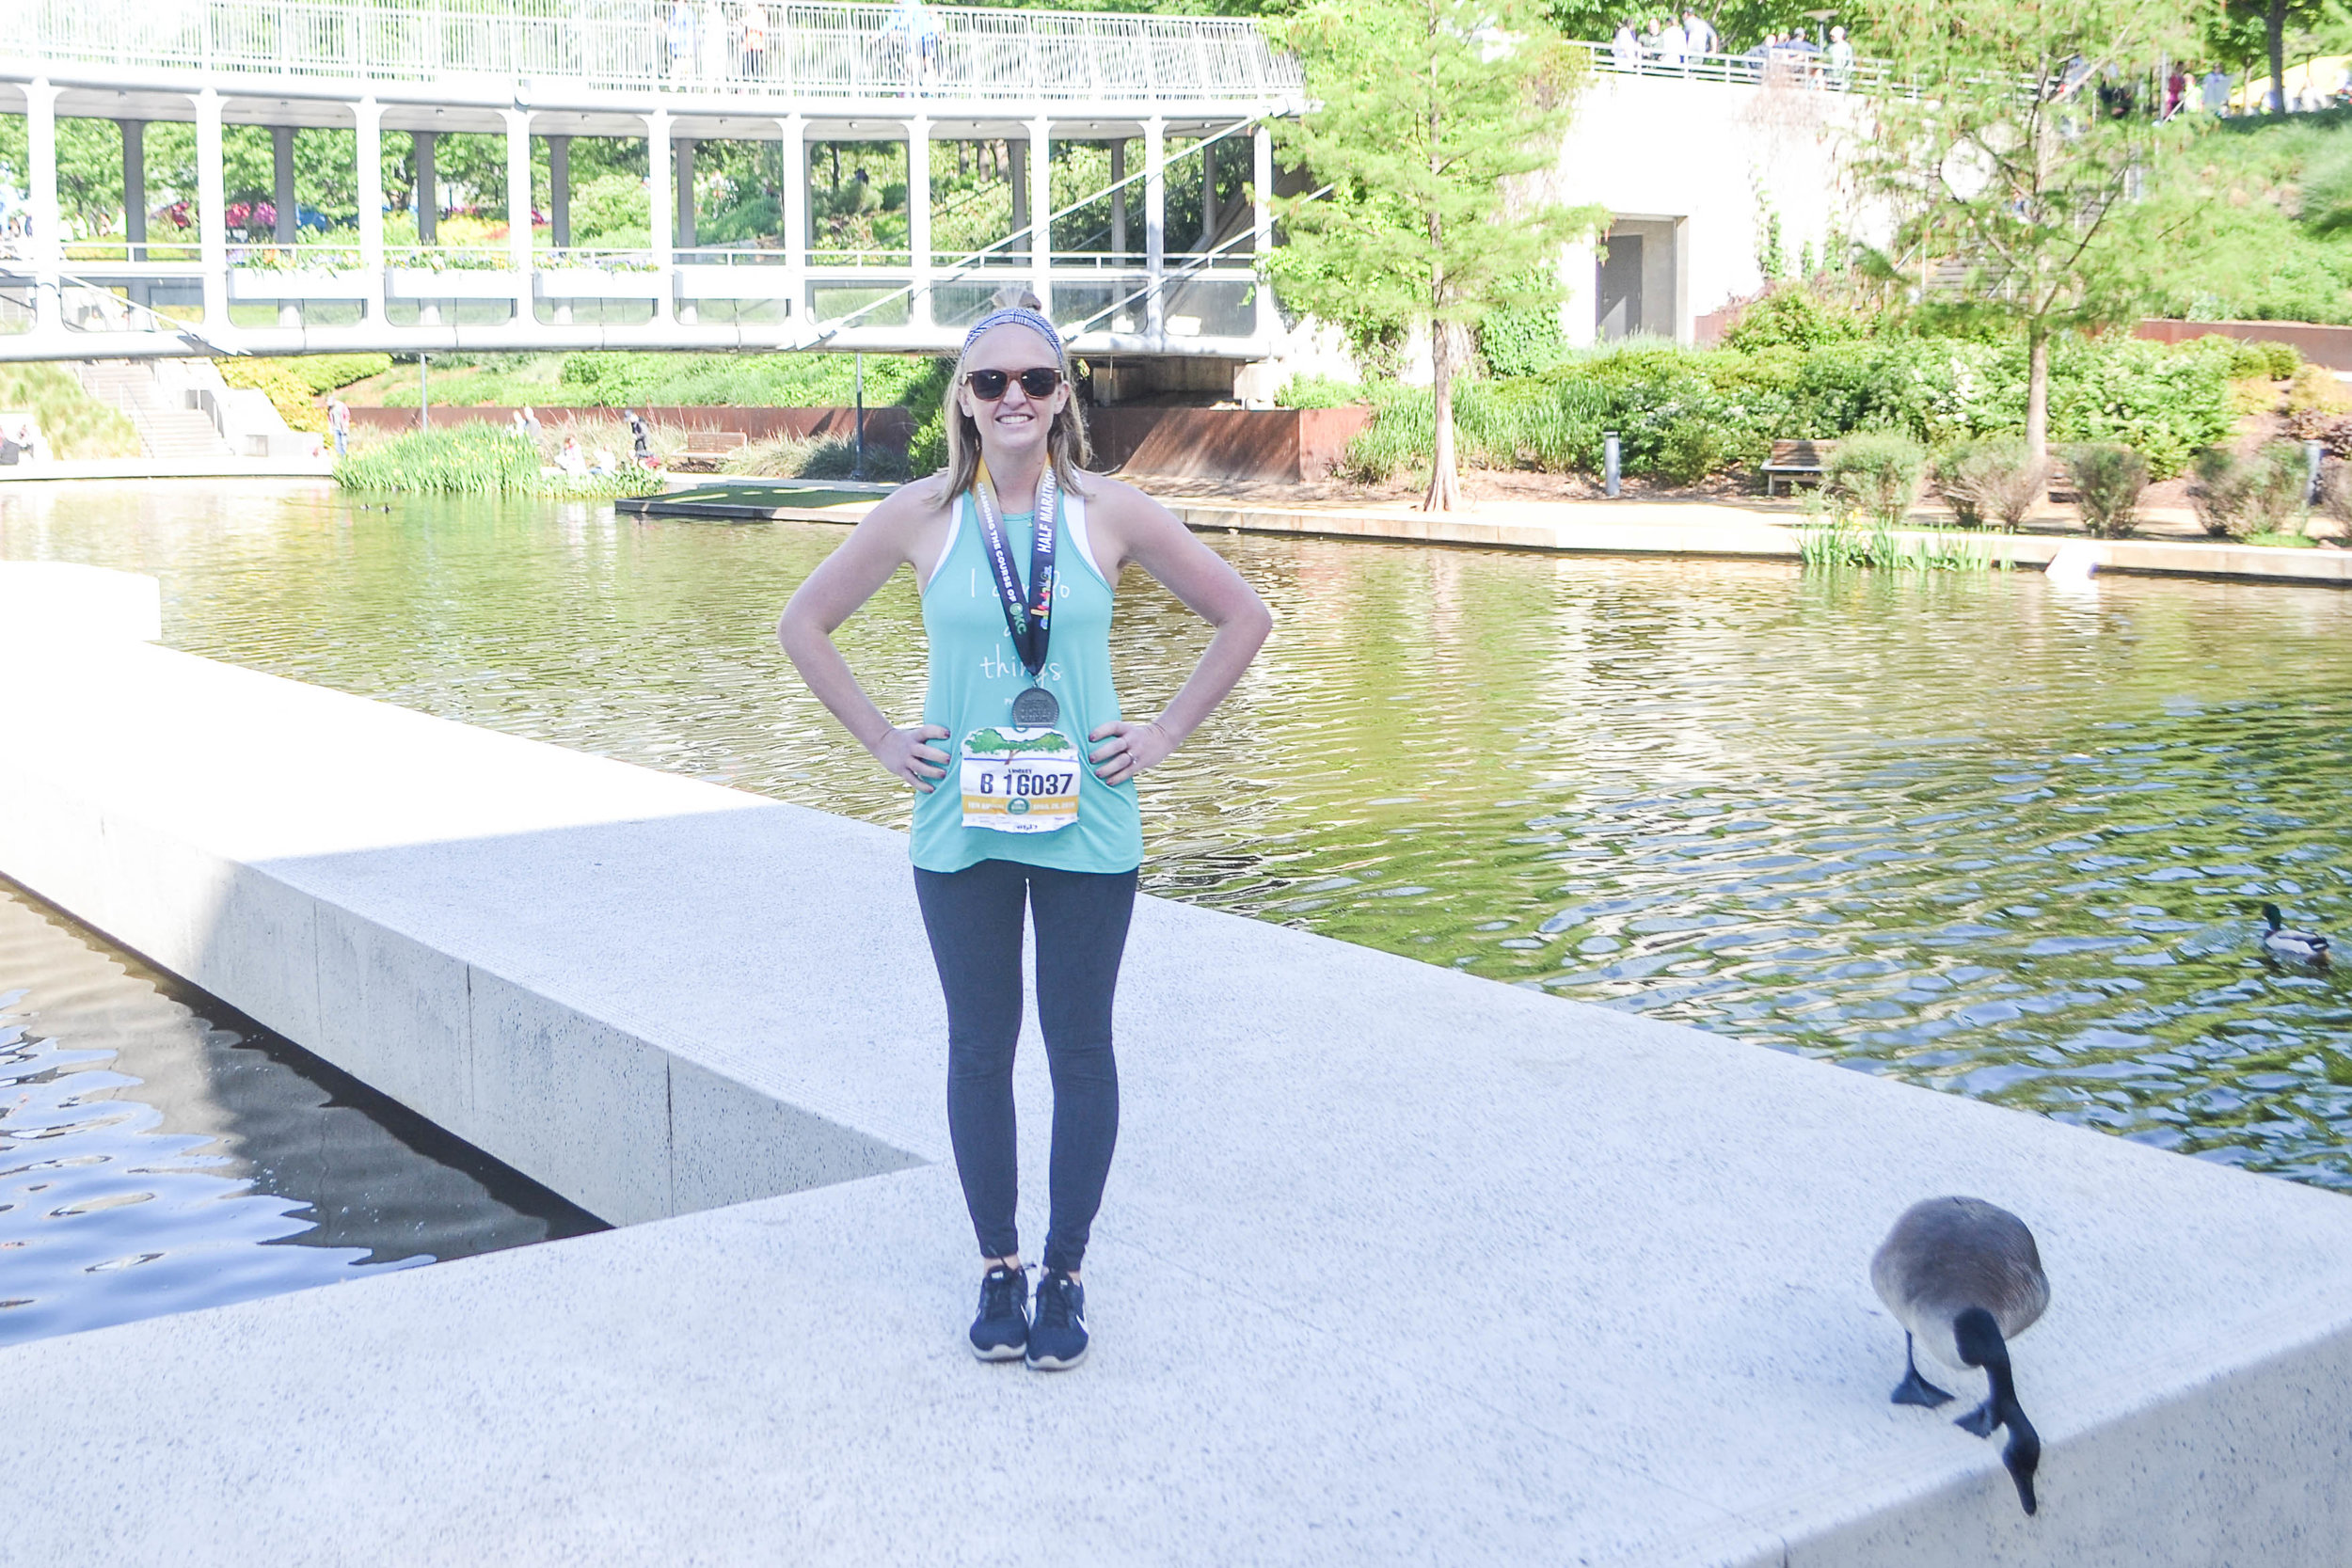 13.1 miles and even that goose knows I smell bad.